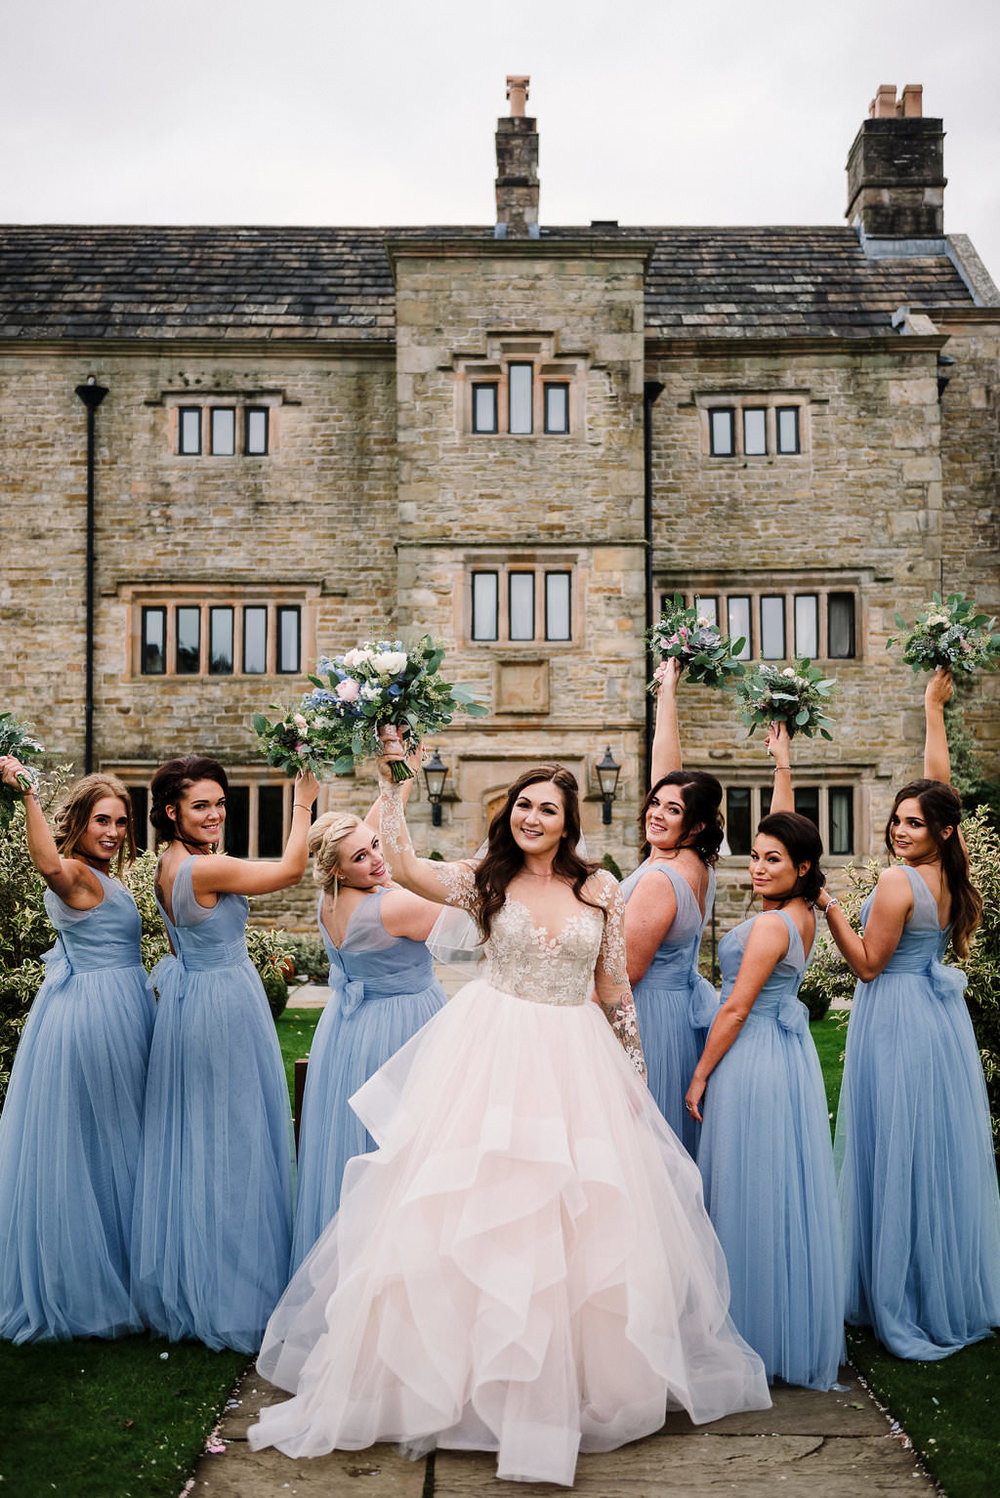 Fun shot of bride and bridesmaids together. Ribble Valley wedding photography